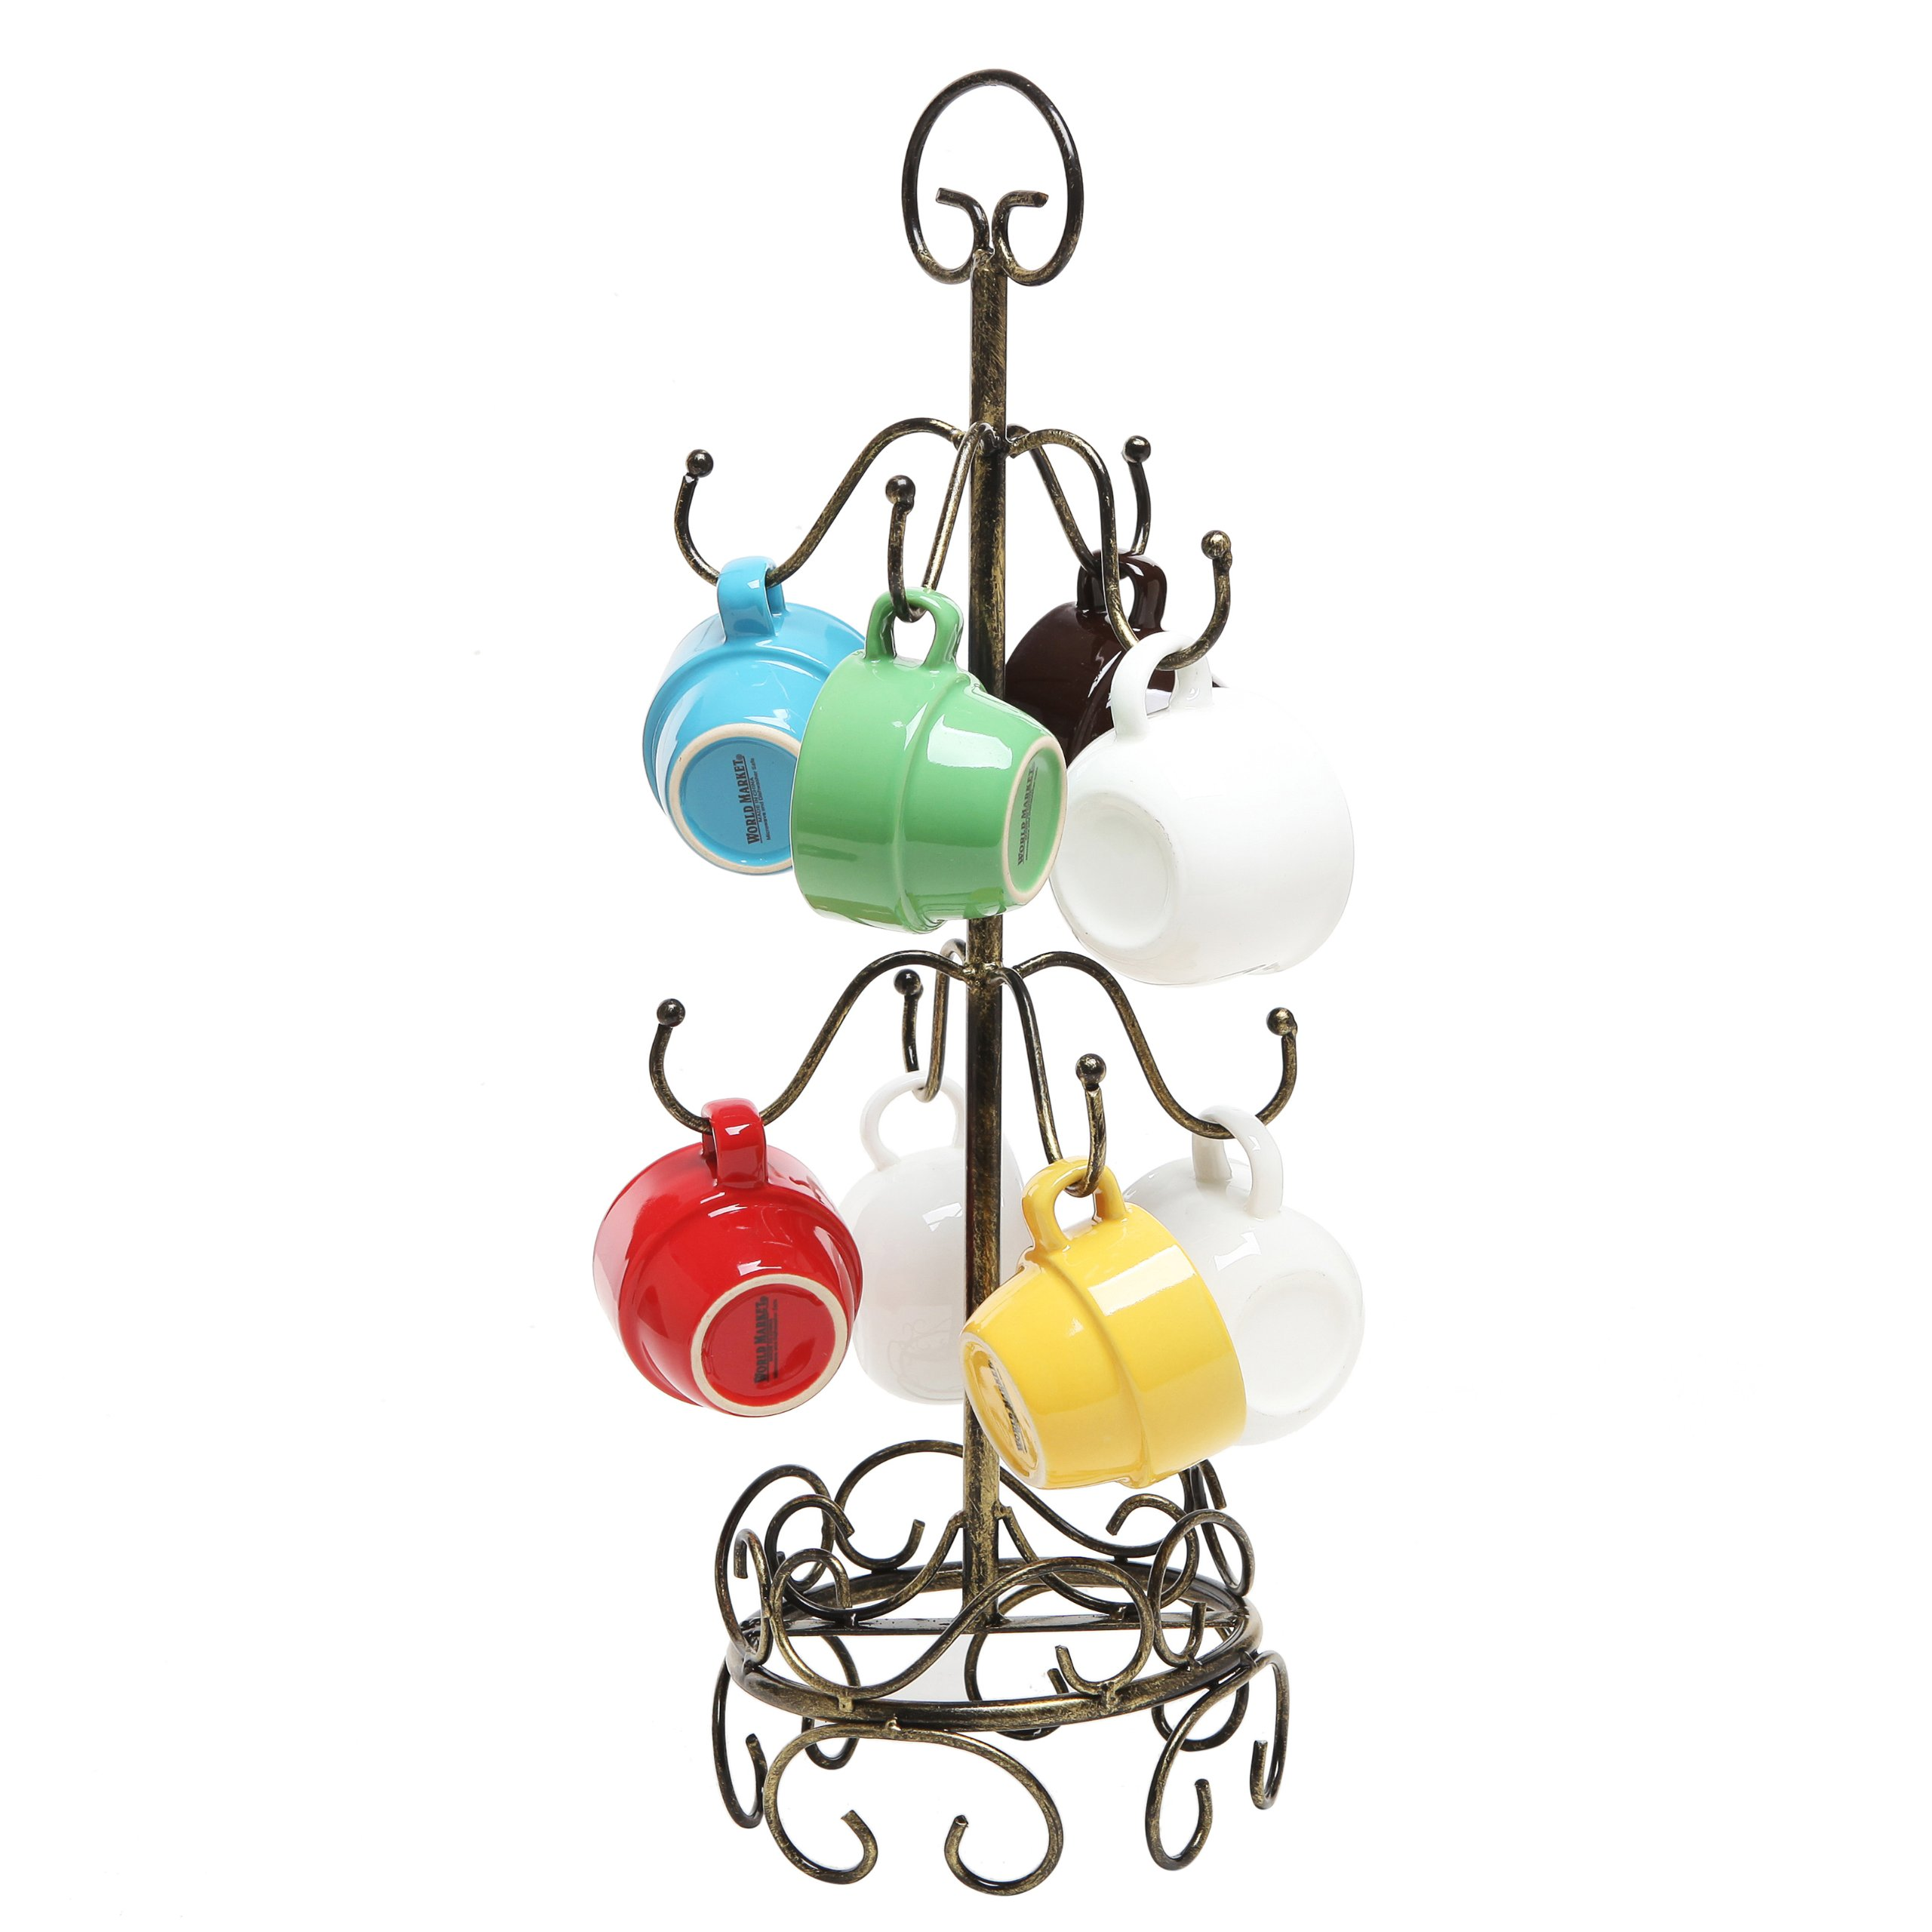 8 Hook Bronze Metal Coffee Mug Tree Air Drying Stand / Tea Cup Rack / Glass Holder -MyGift by MyGift